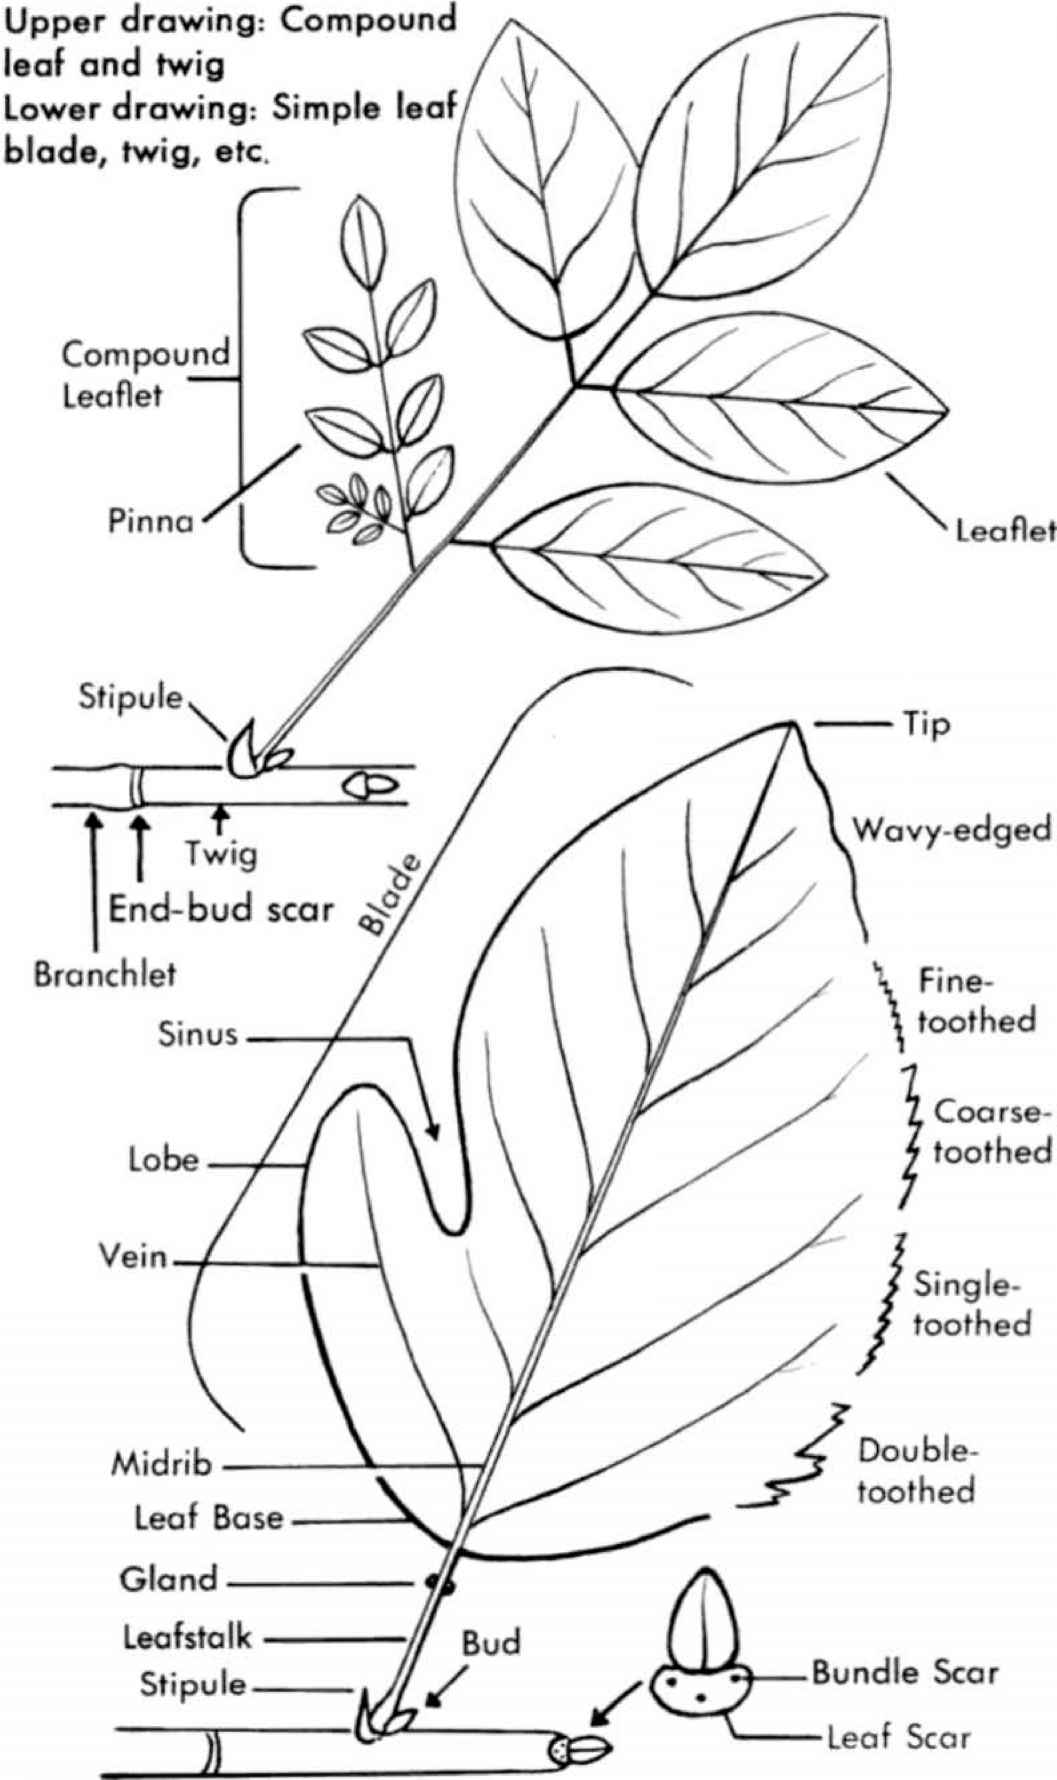 How to Use This Book - Small Tree - Medicinal Plants Archive